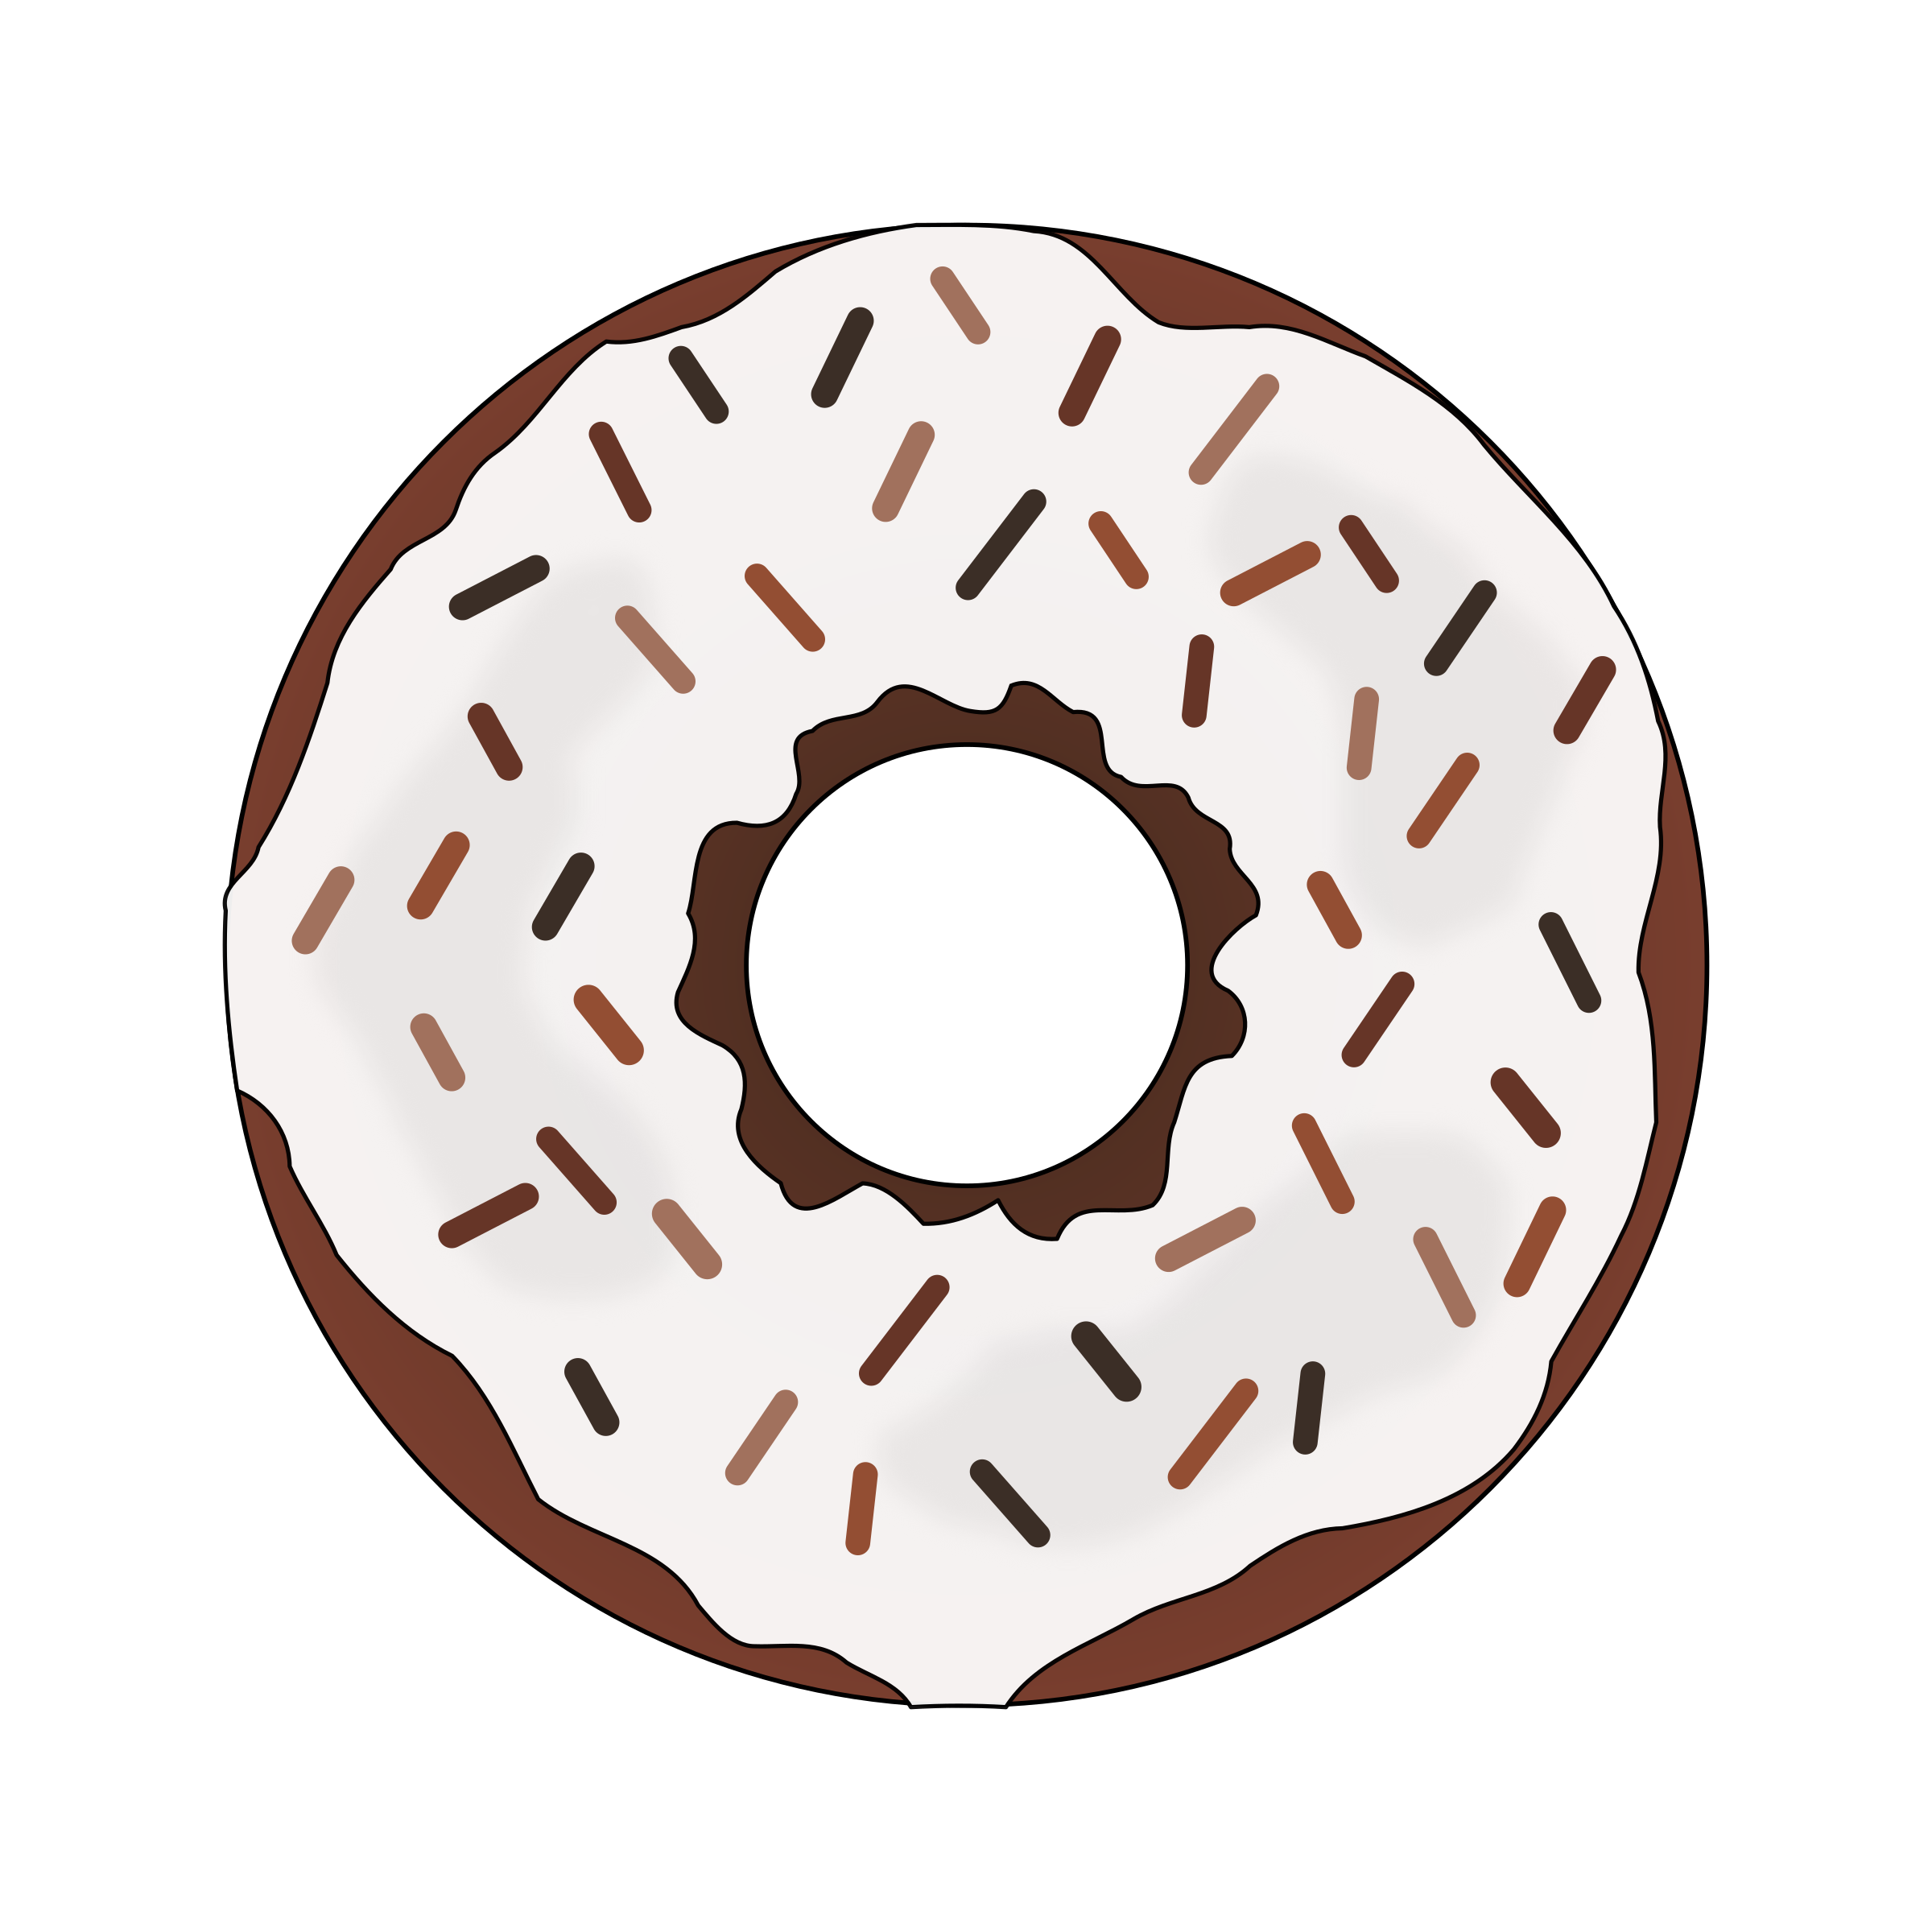 Brown Donut by PinkJellyfish